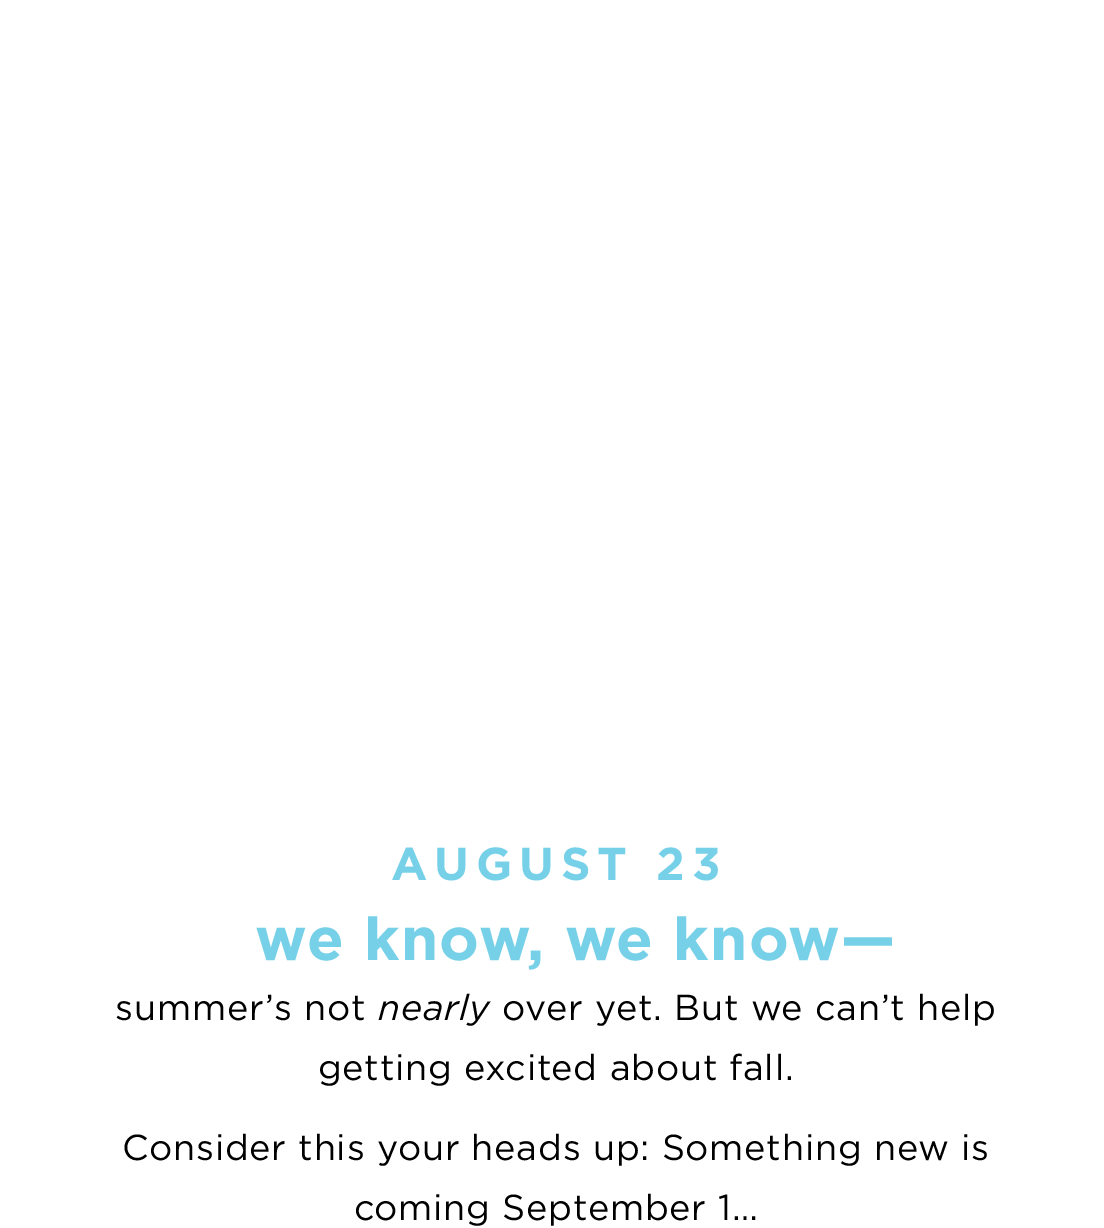 AUGUST 23 - We know, we know...